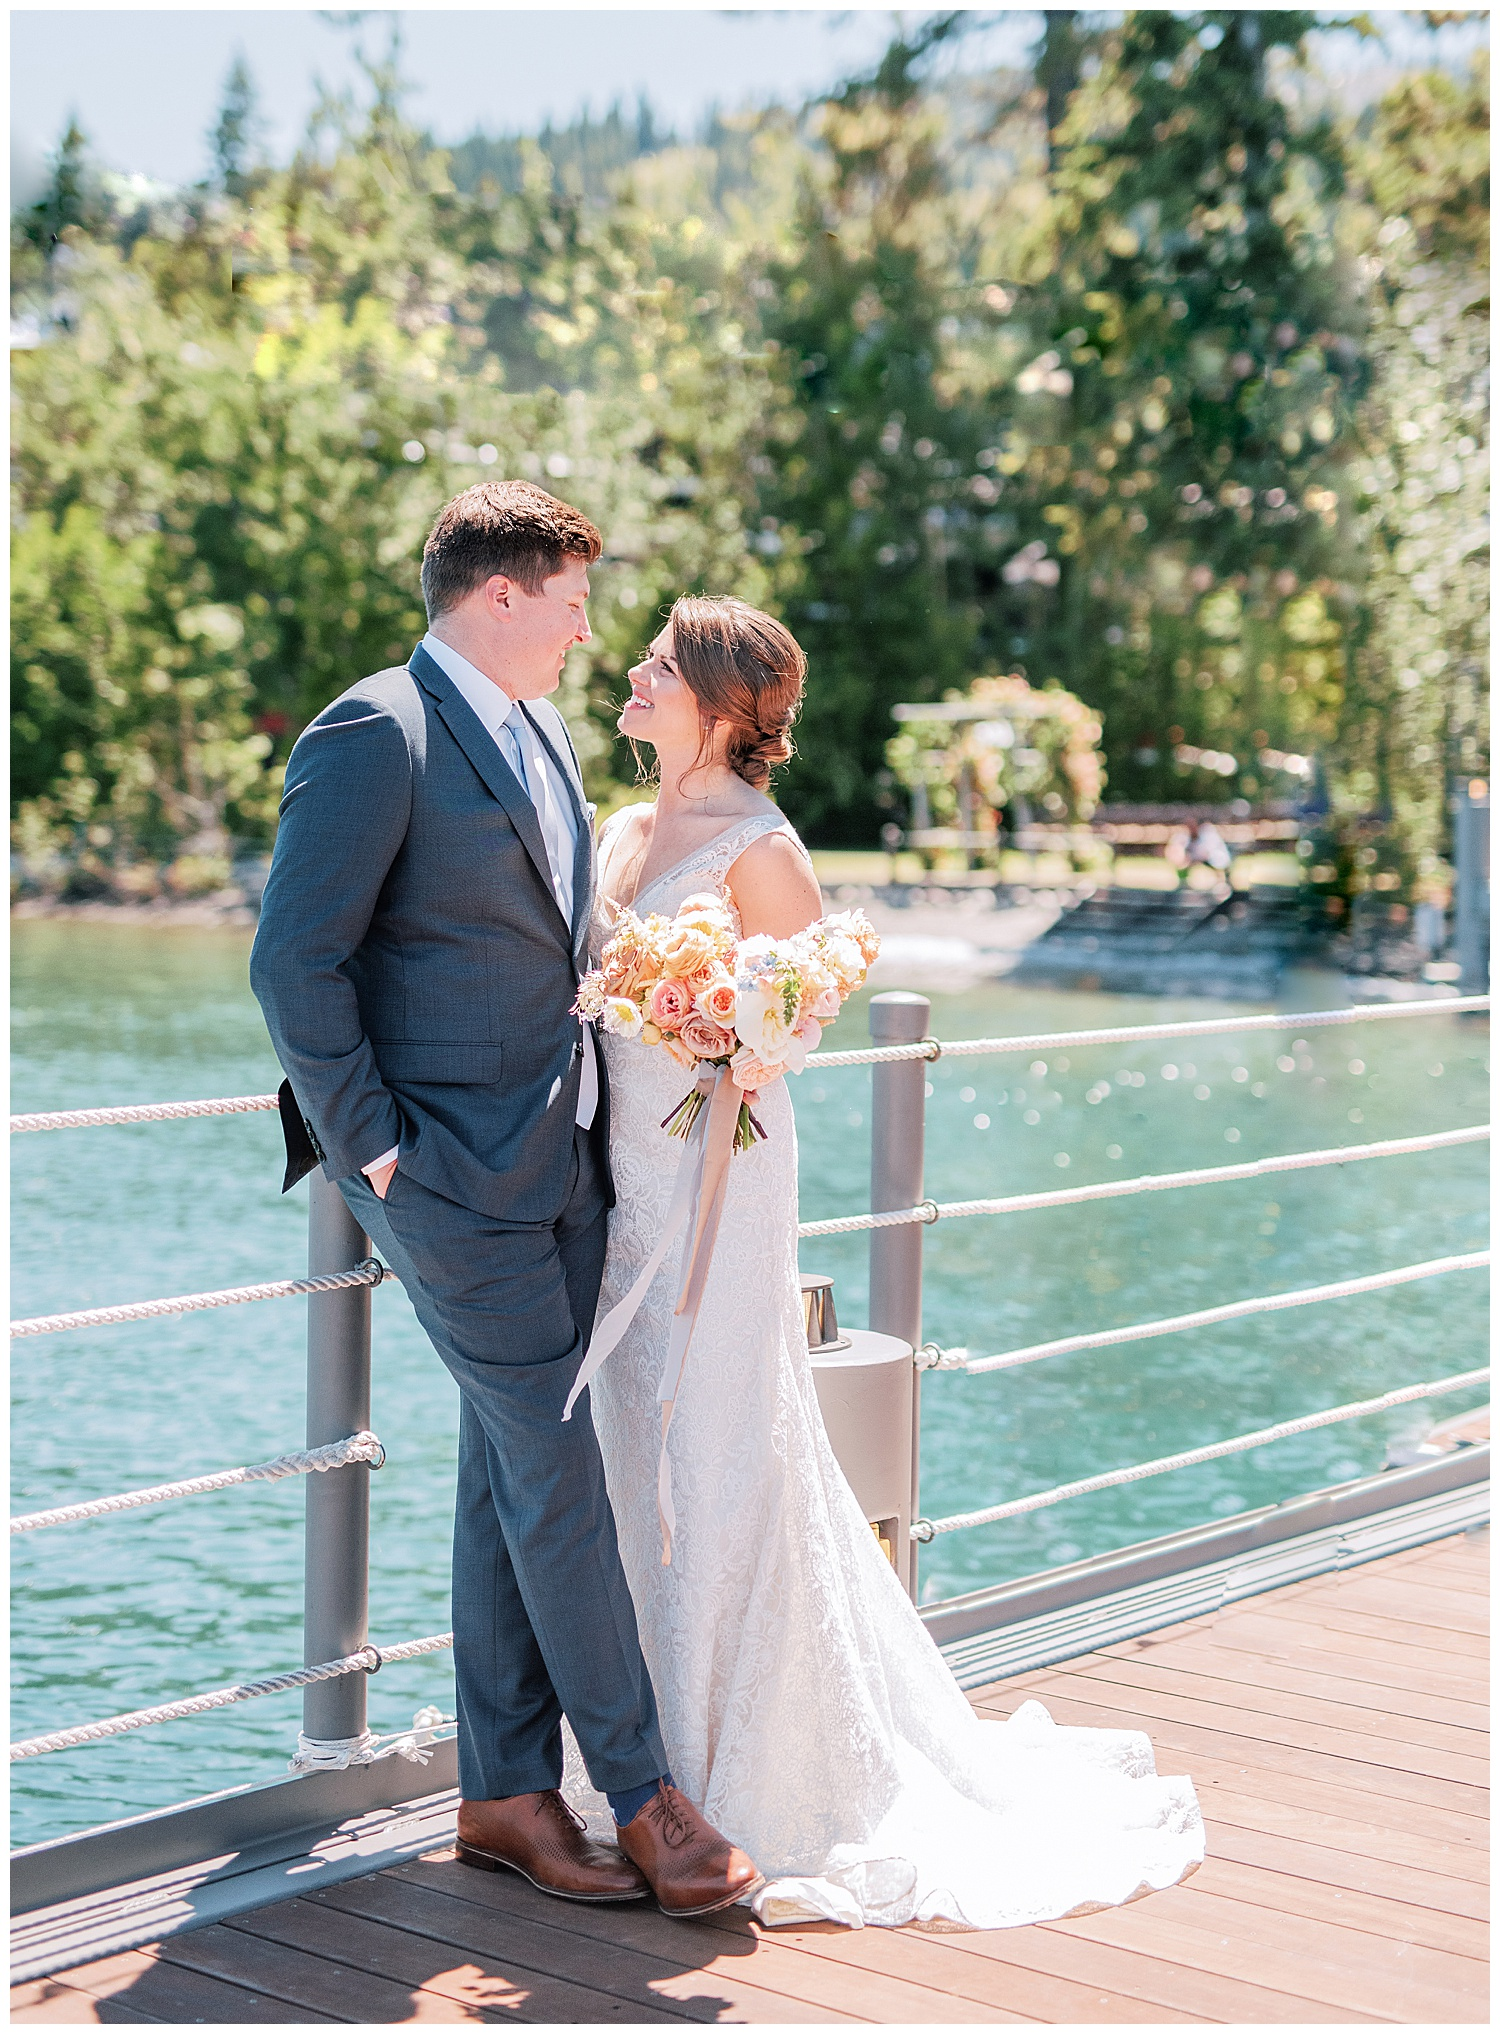 Janine_Licare_Photography_San_Francisco_Wedding_Photographer_Lake_Tahoe_West_Shore_Cafe_Colorful_Summer_0033.jpg